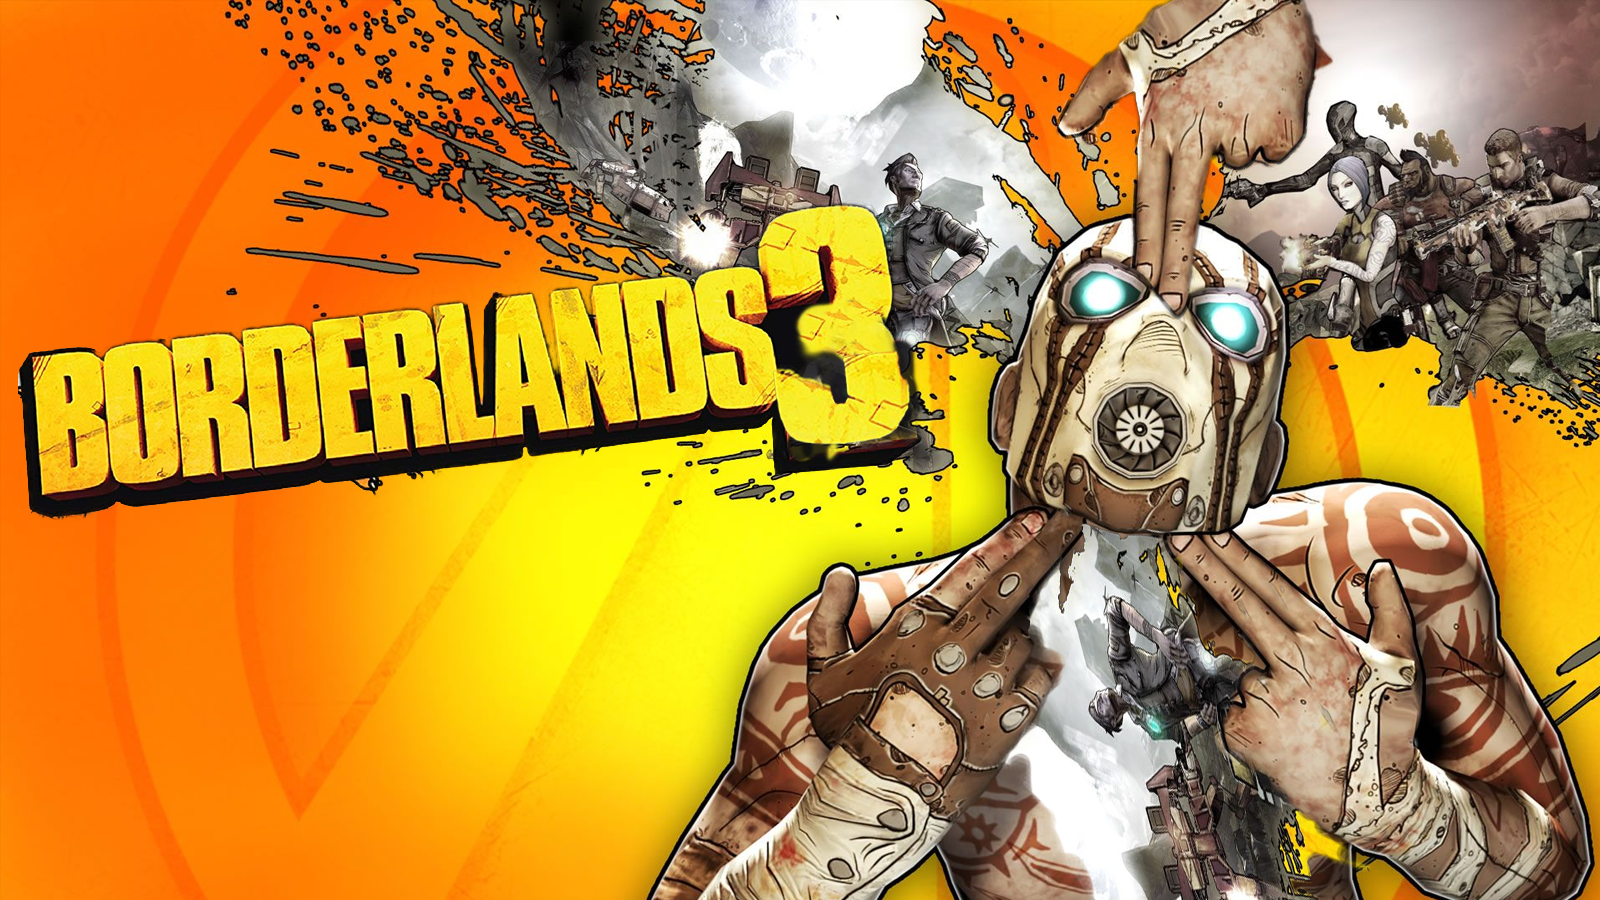 Will Borderlands 3 Live Up To The Hype Or Will It Feel Dated